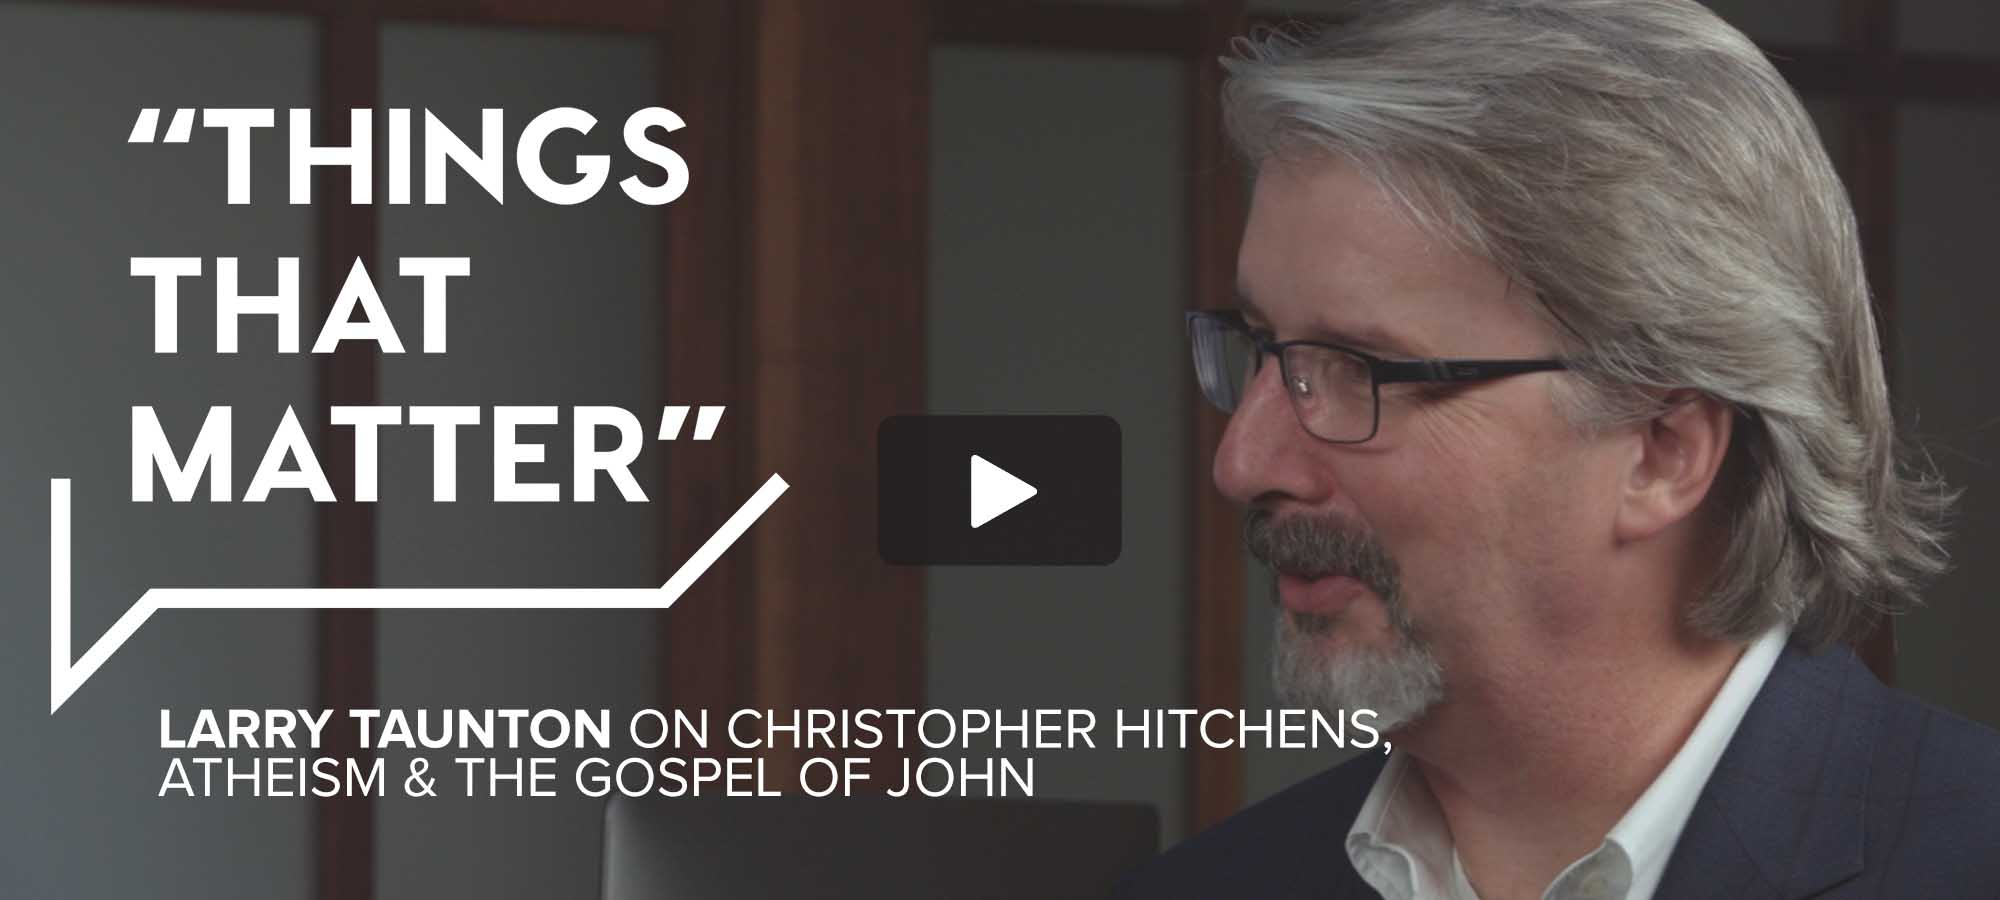 TTM S2 E4 - Larry Taunton on Christopher Hitchens, Atheism & the Gospel of John: Vault